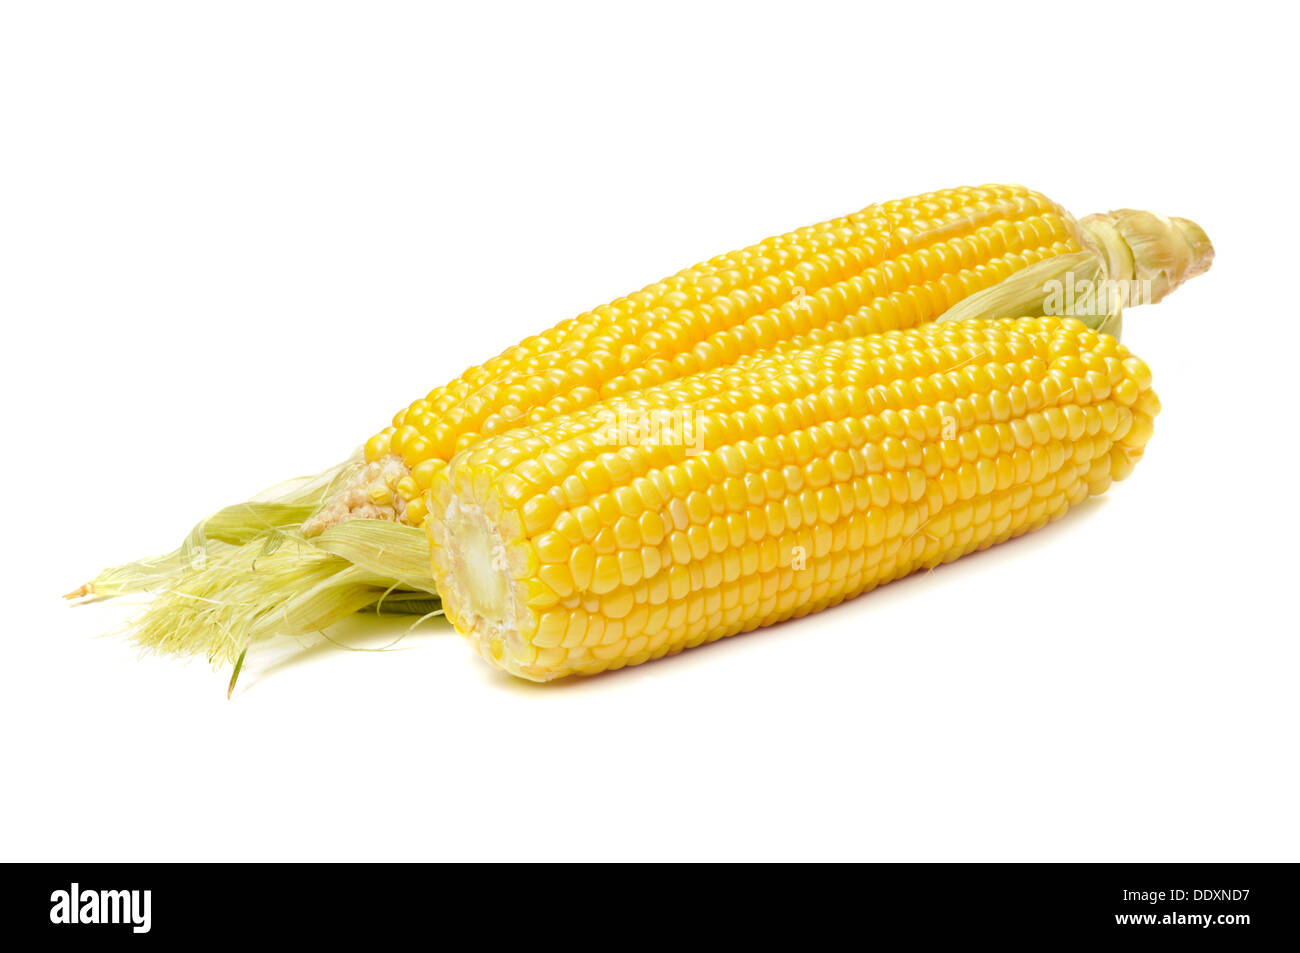 Ear of corn isolated on a white background - Stock Image